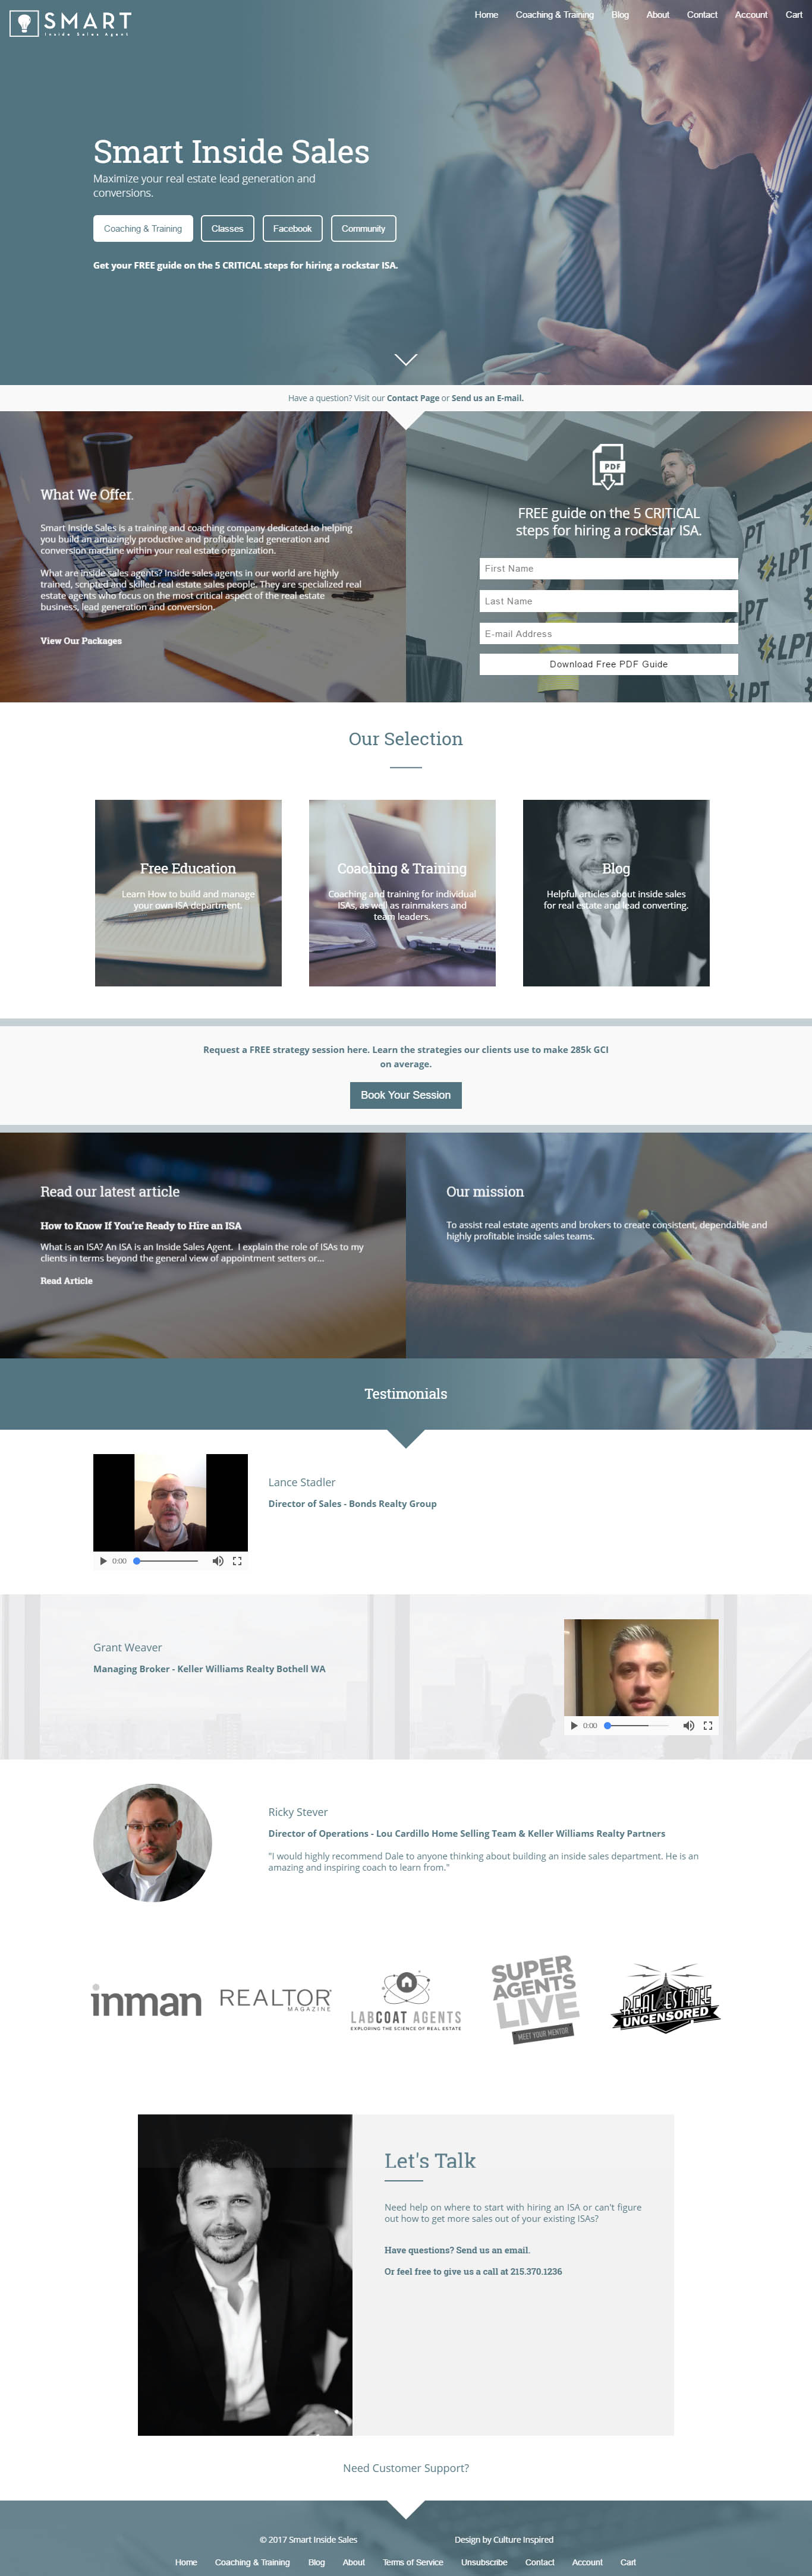 Smart Inside Sales Web Design Example